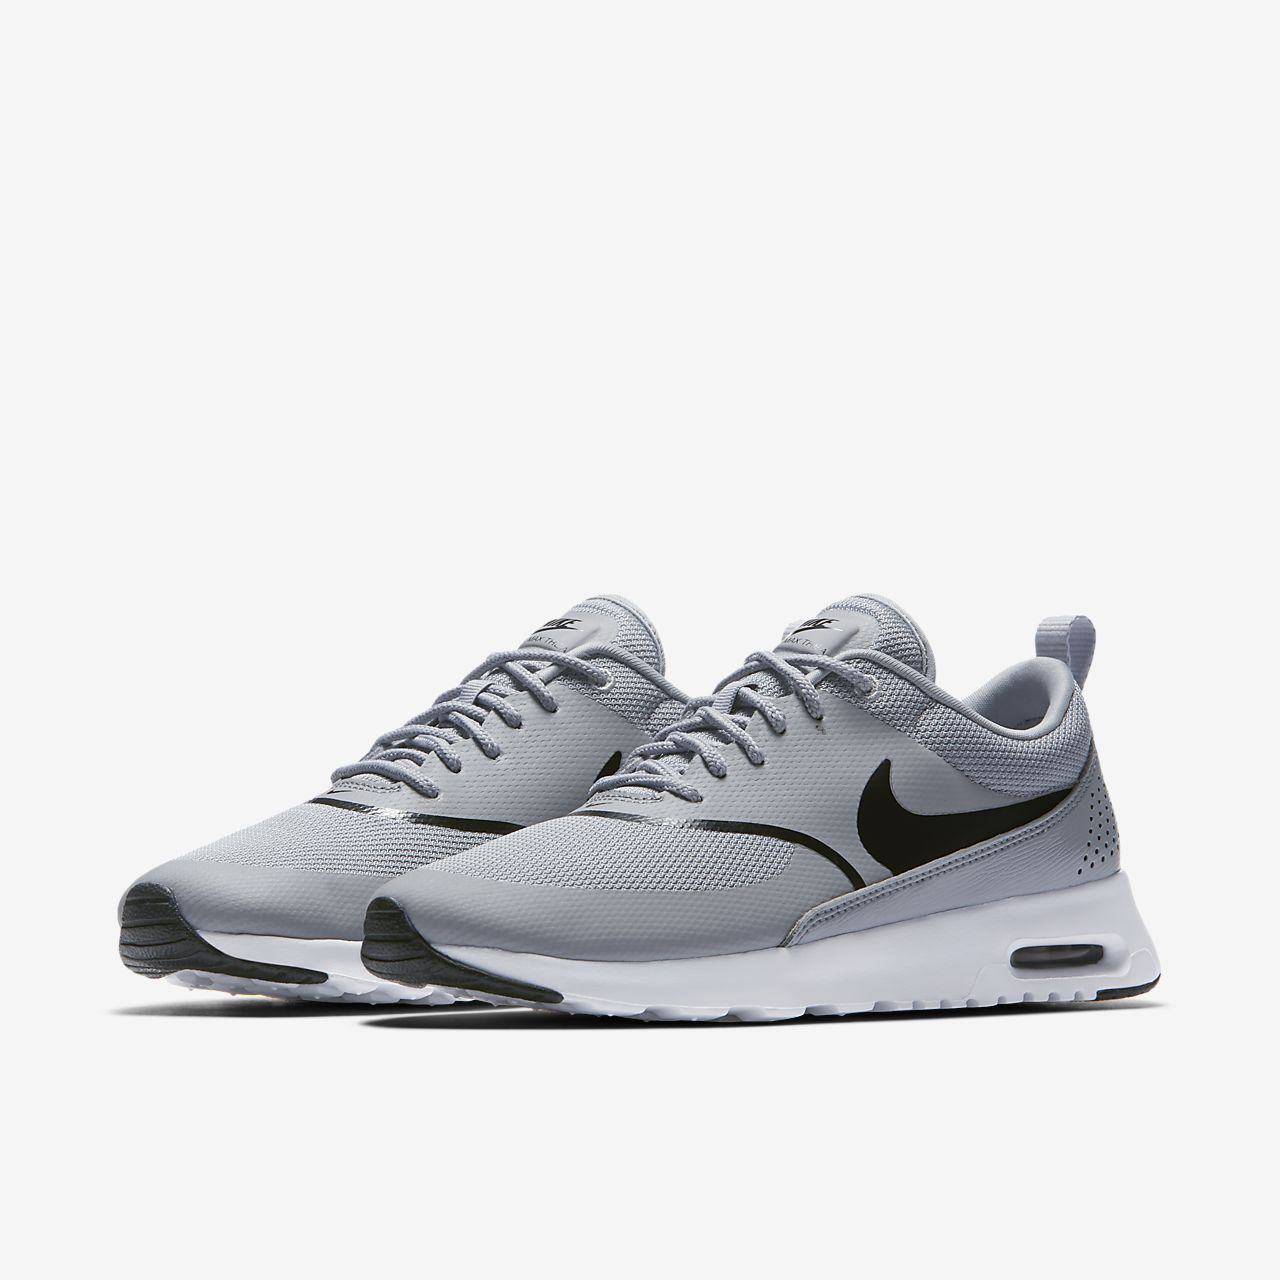 reputable site 7c3a9 afe82 ... Nike Air Max Thea Women s Shoe